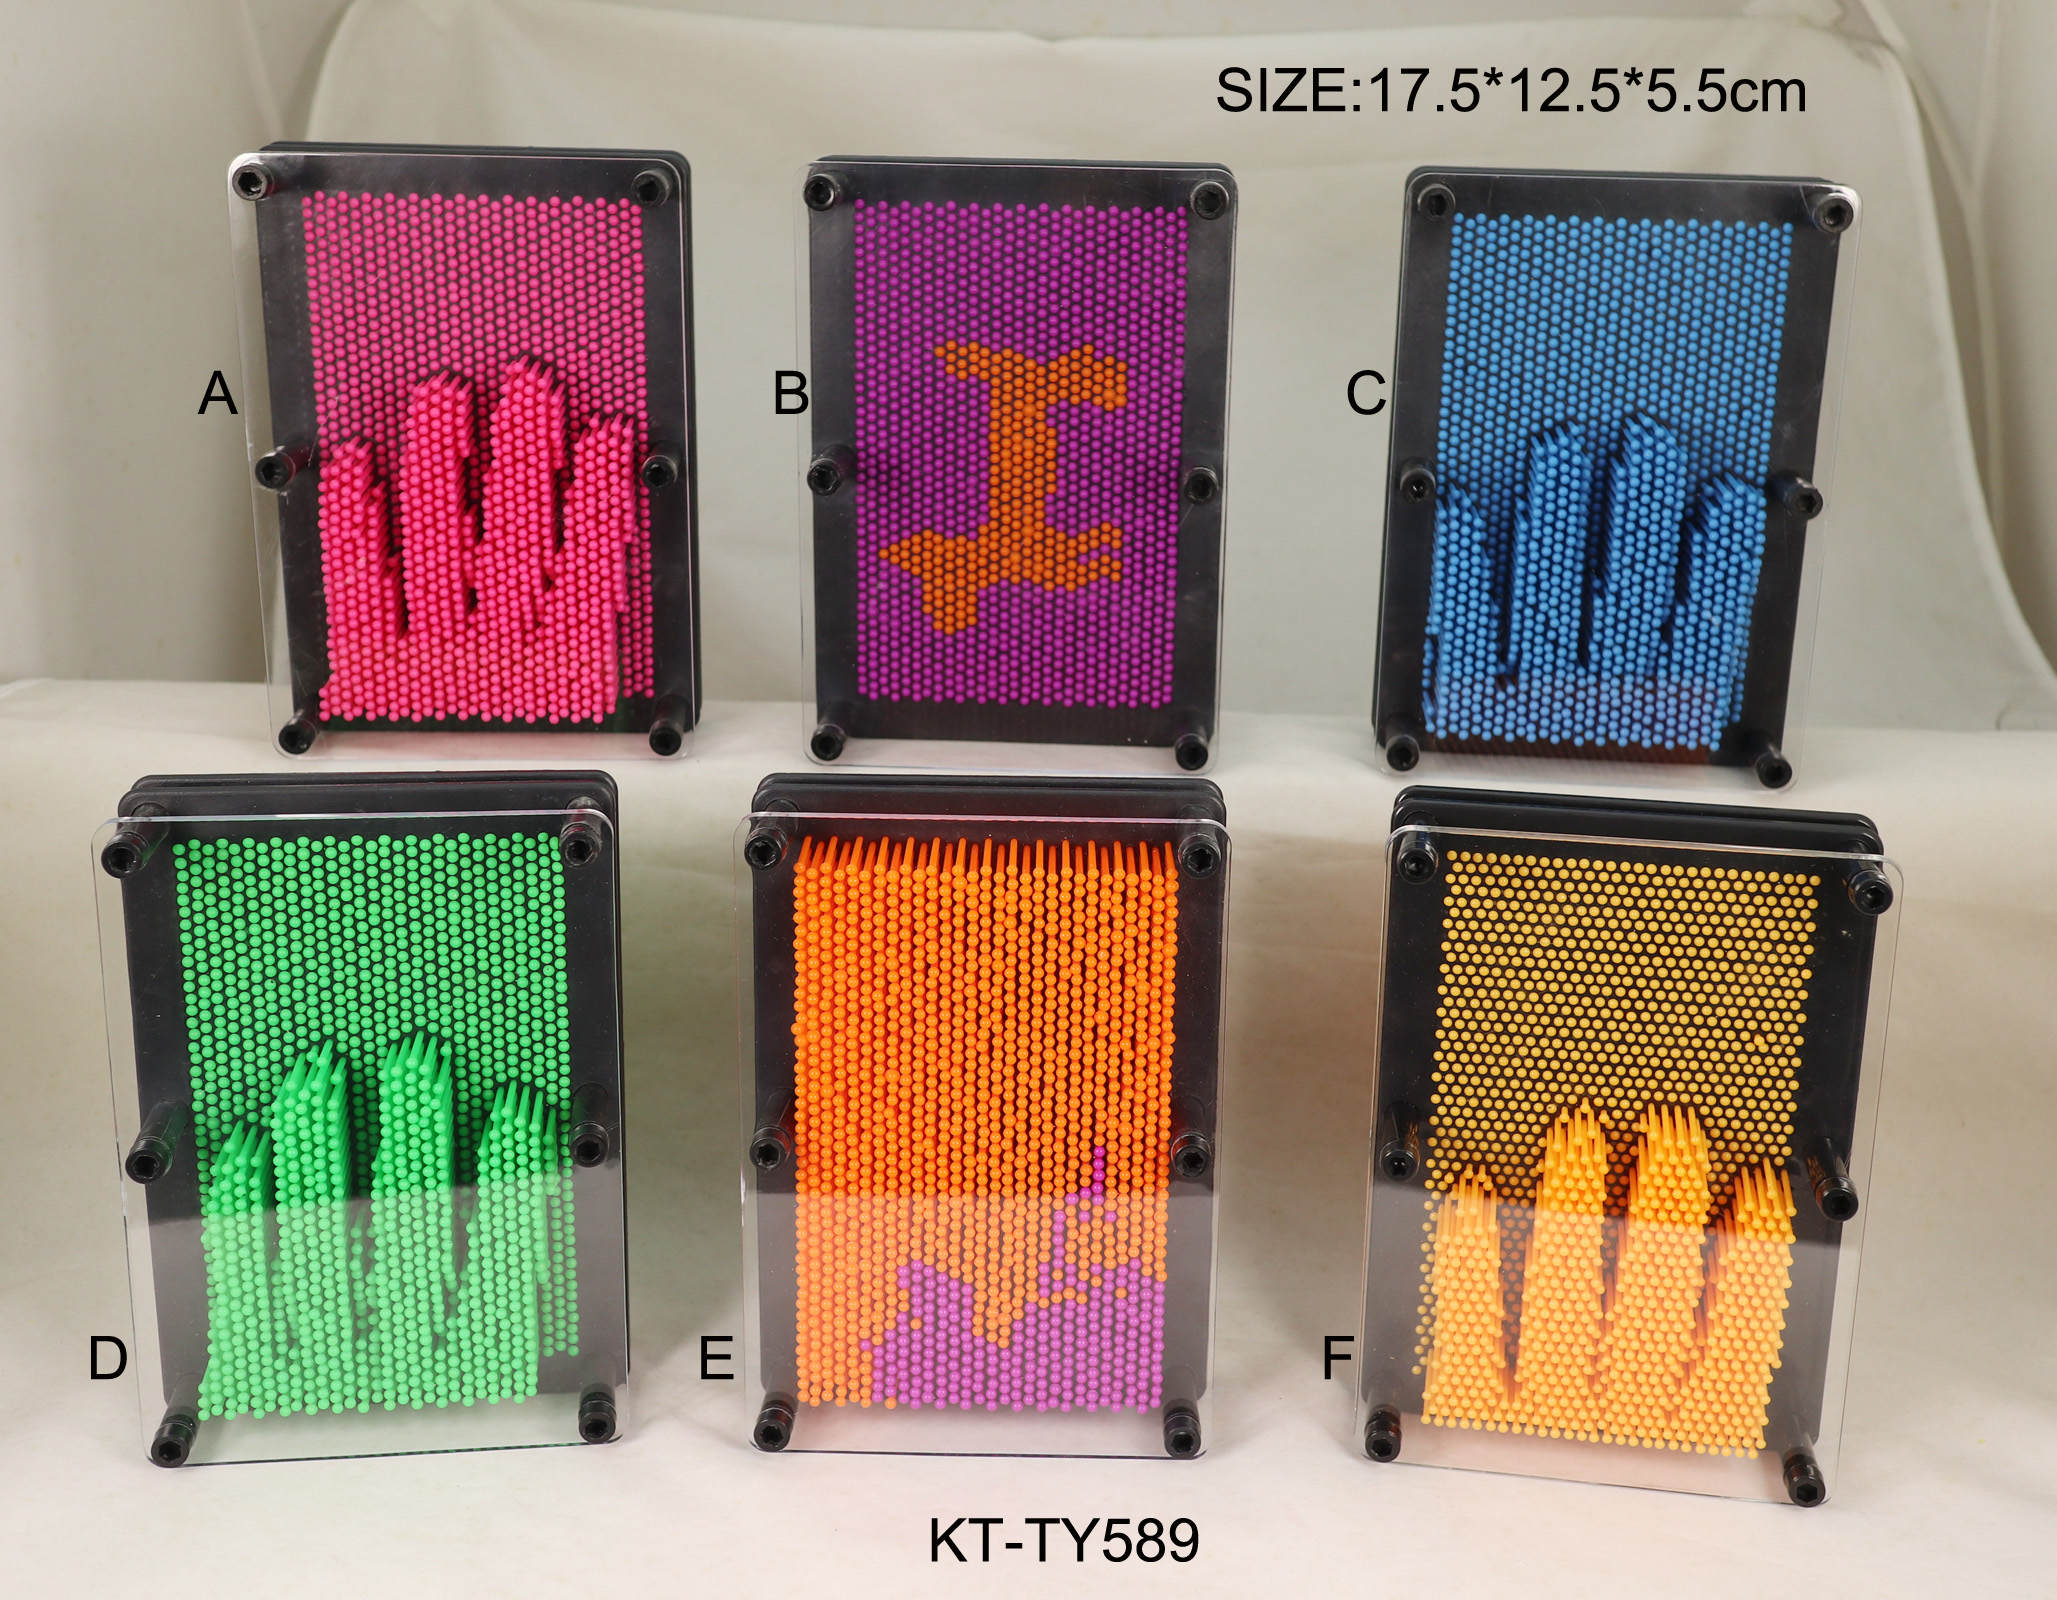 KT-TY589